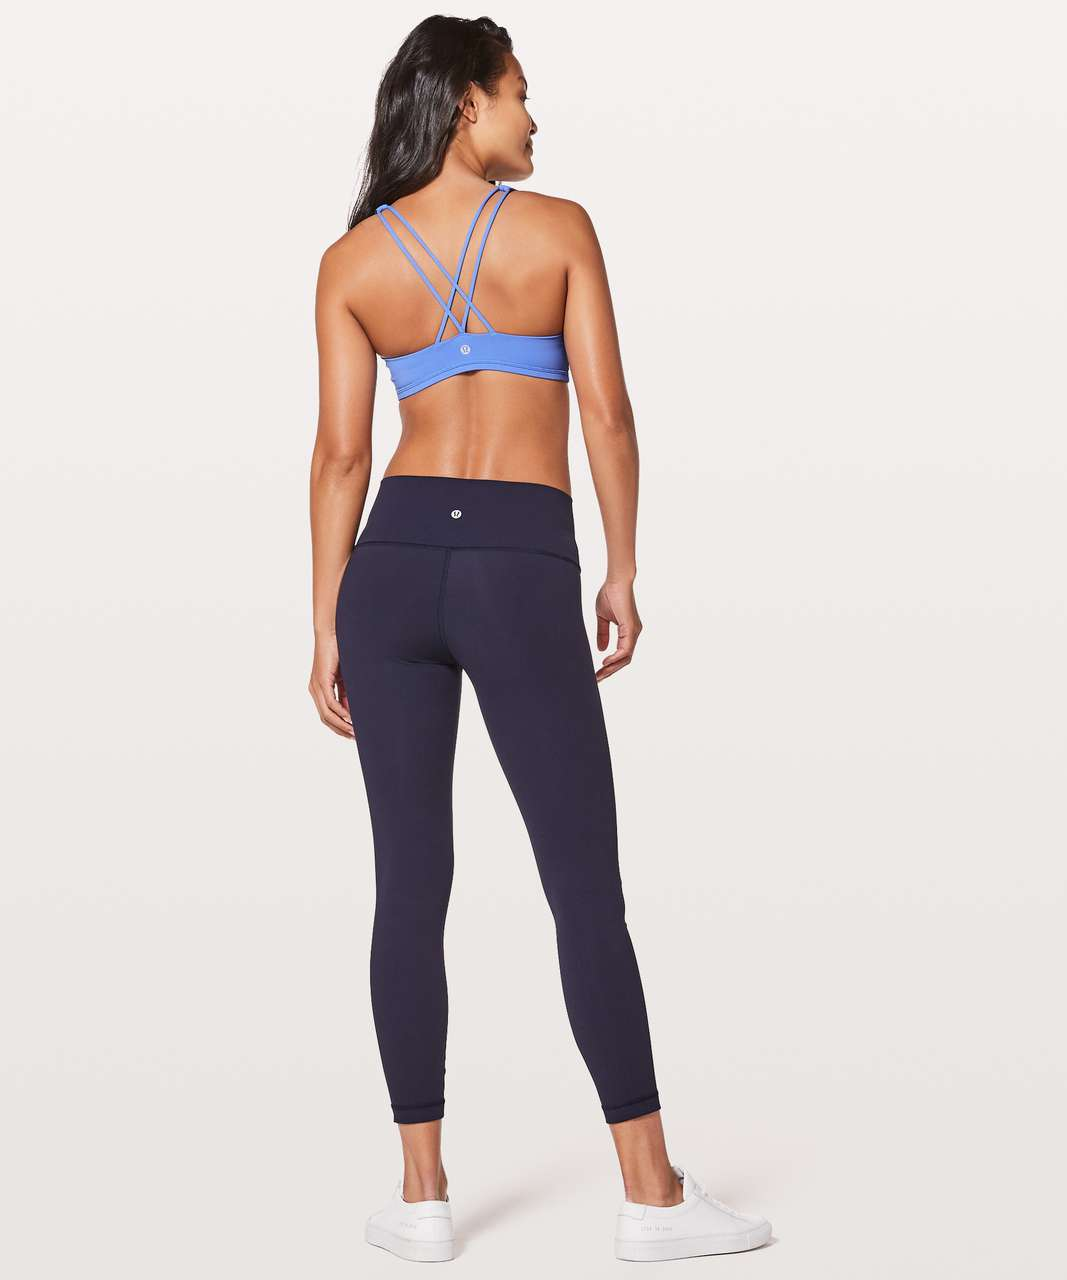 Lululemon Free To Be Bra - Light Horizon